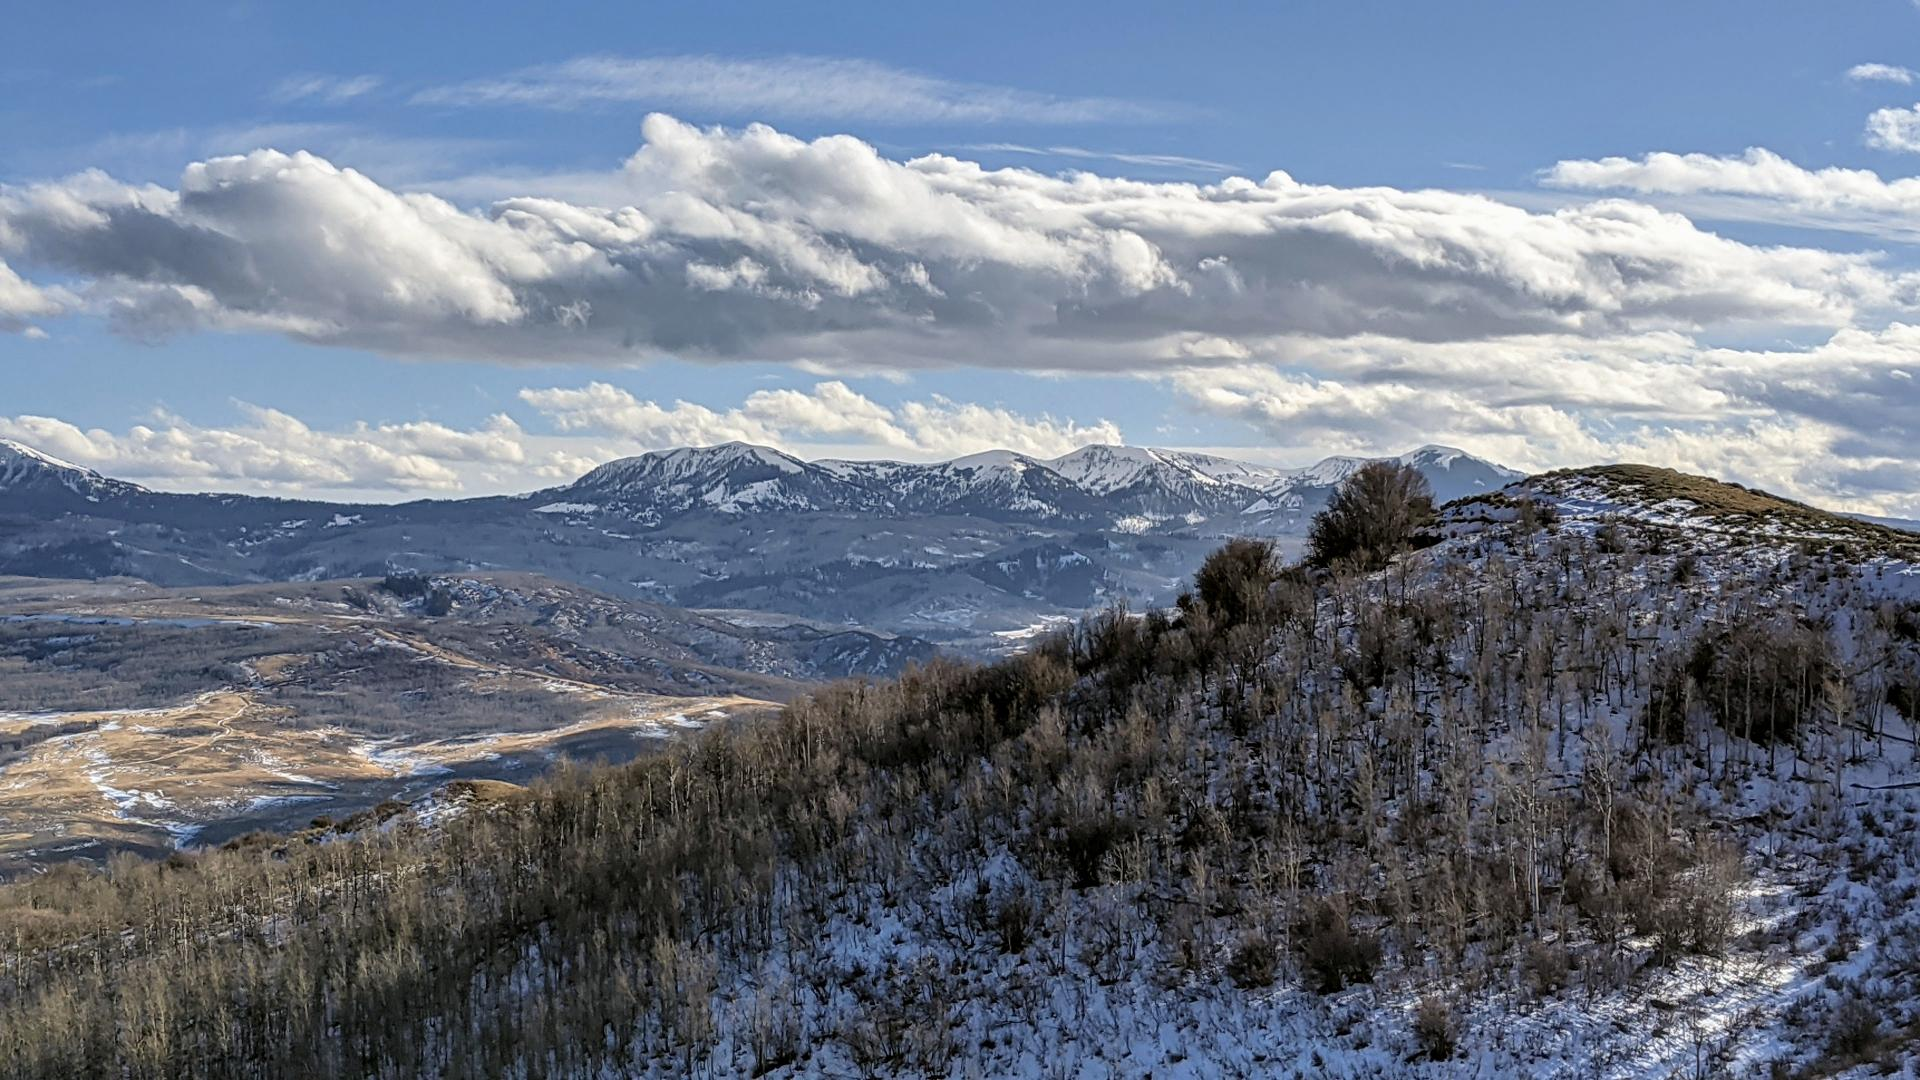 Click image for larger version  Name:Thousand Peaks Ranch.jpg Views:22 Size:337.0 KB ID:145025